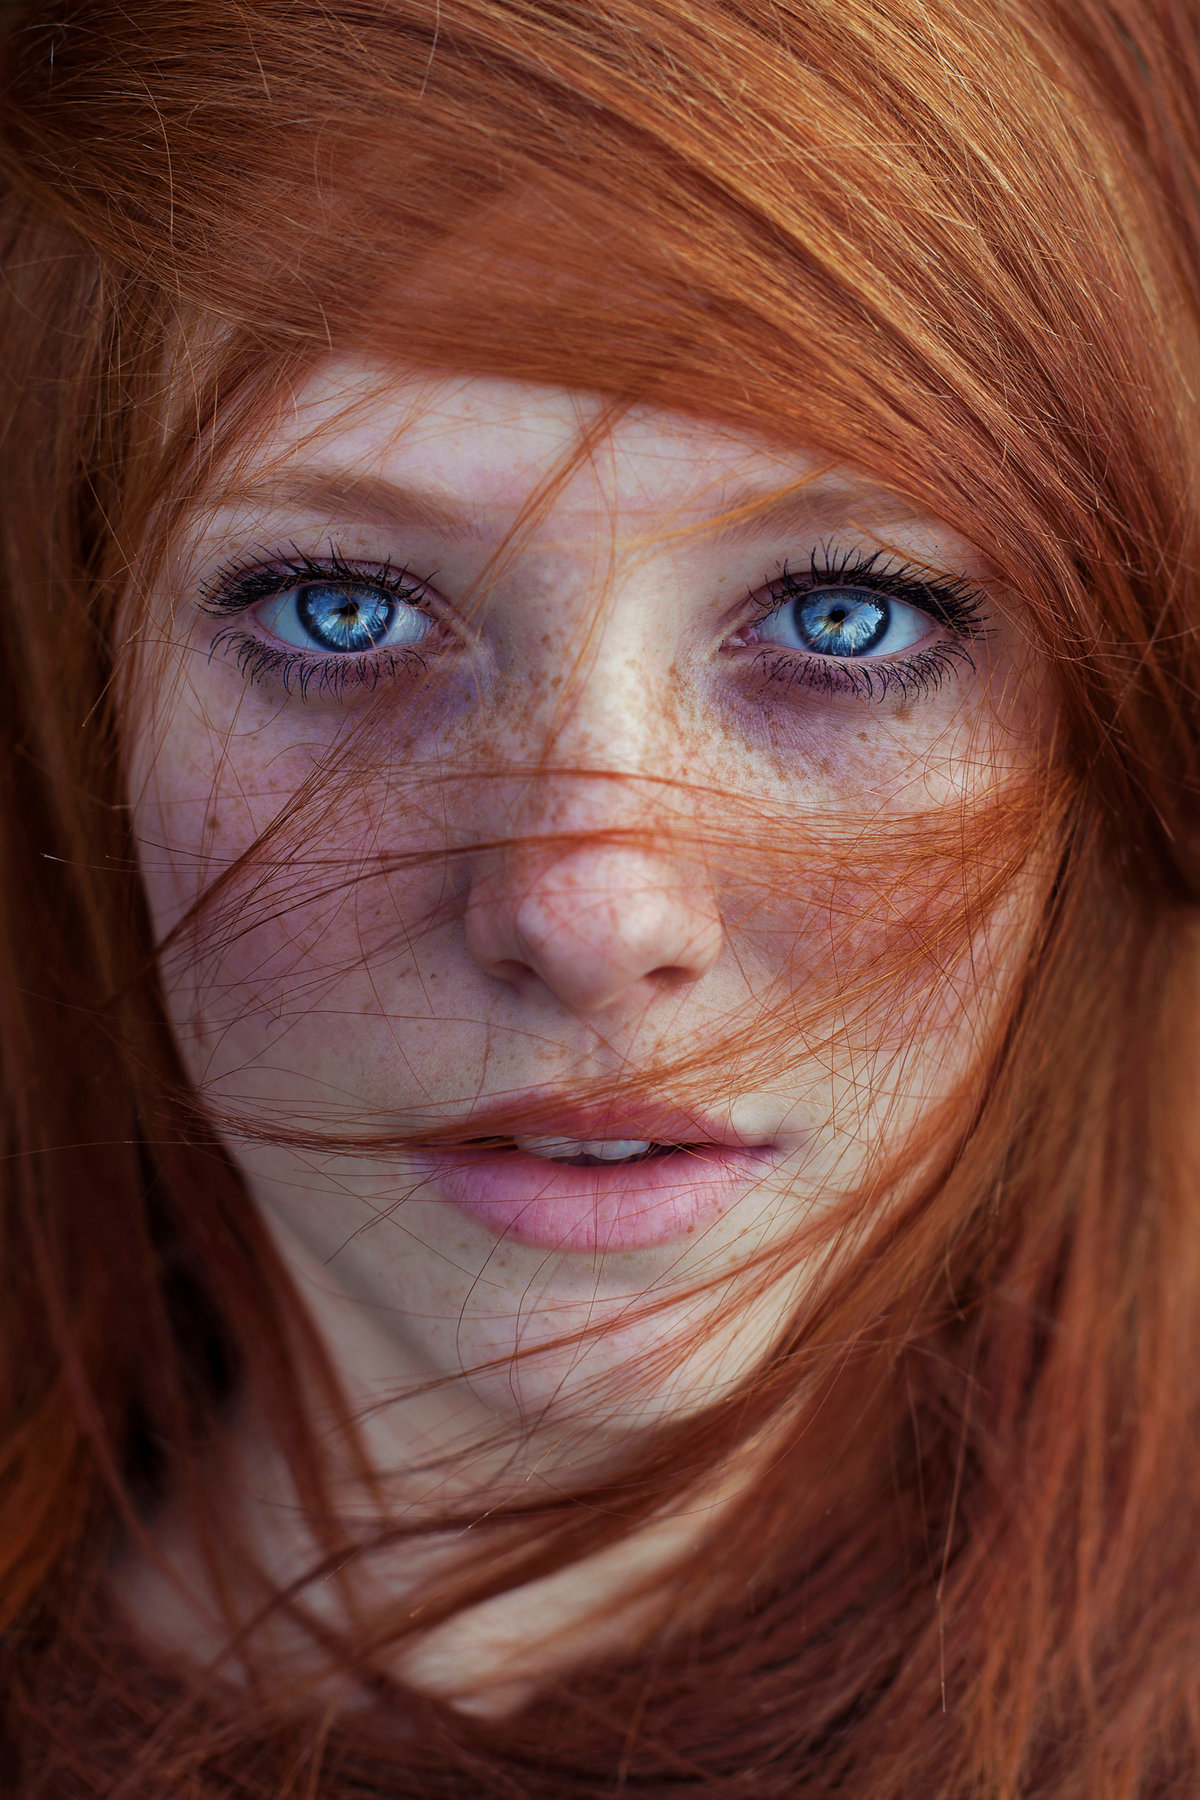 Leukoderma pictures of face redhead orgasm teen